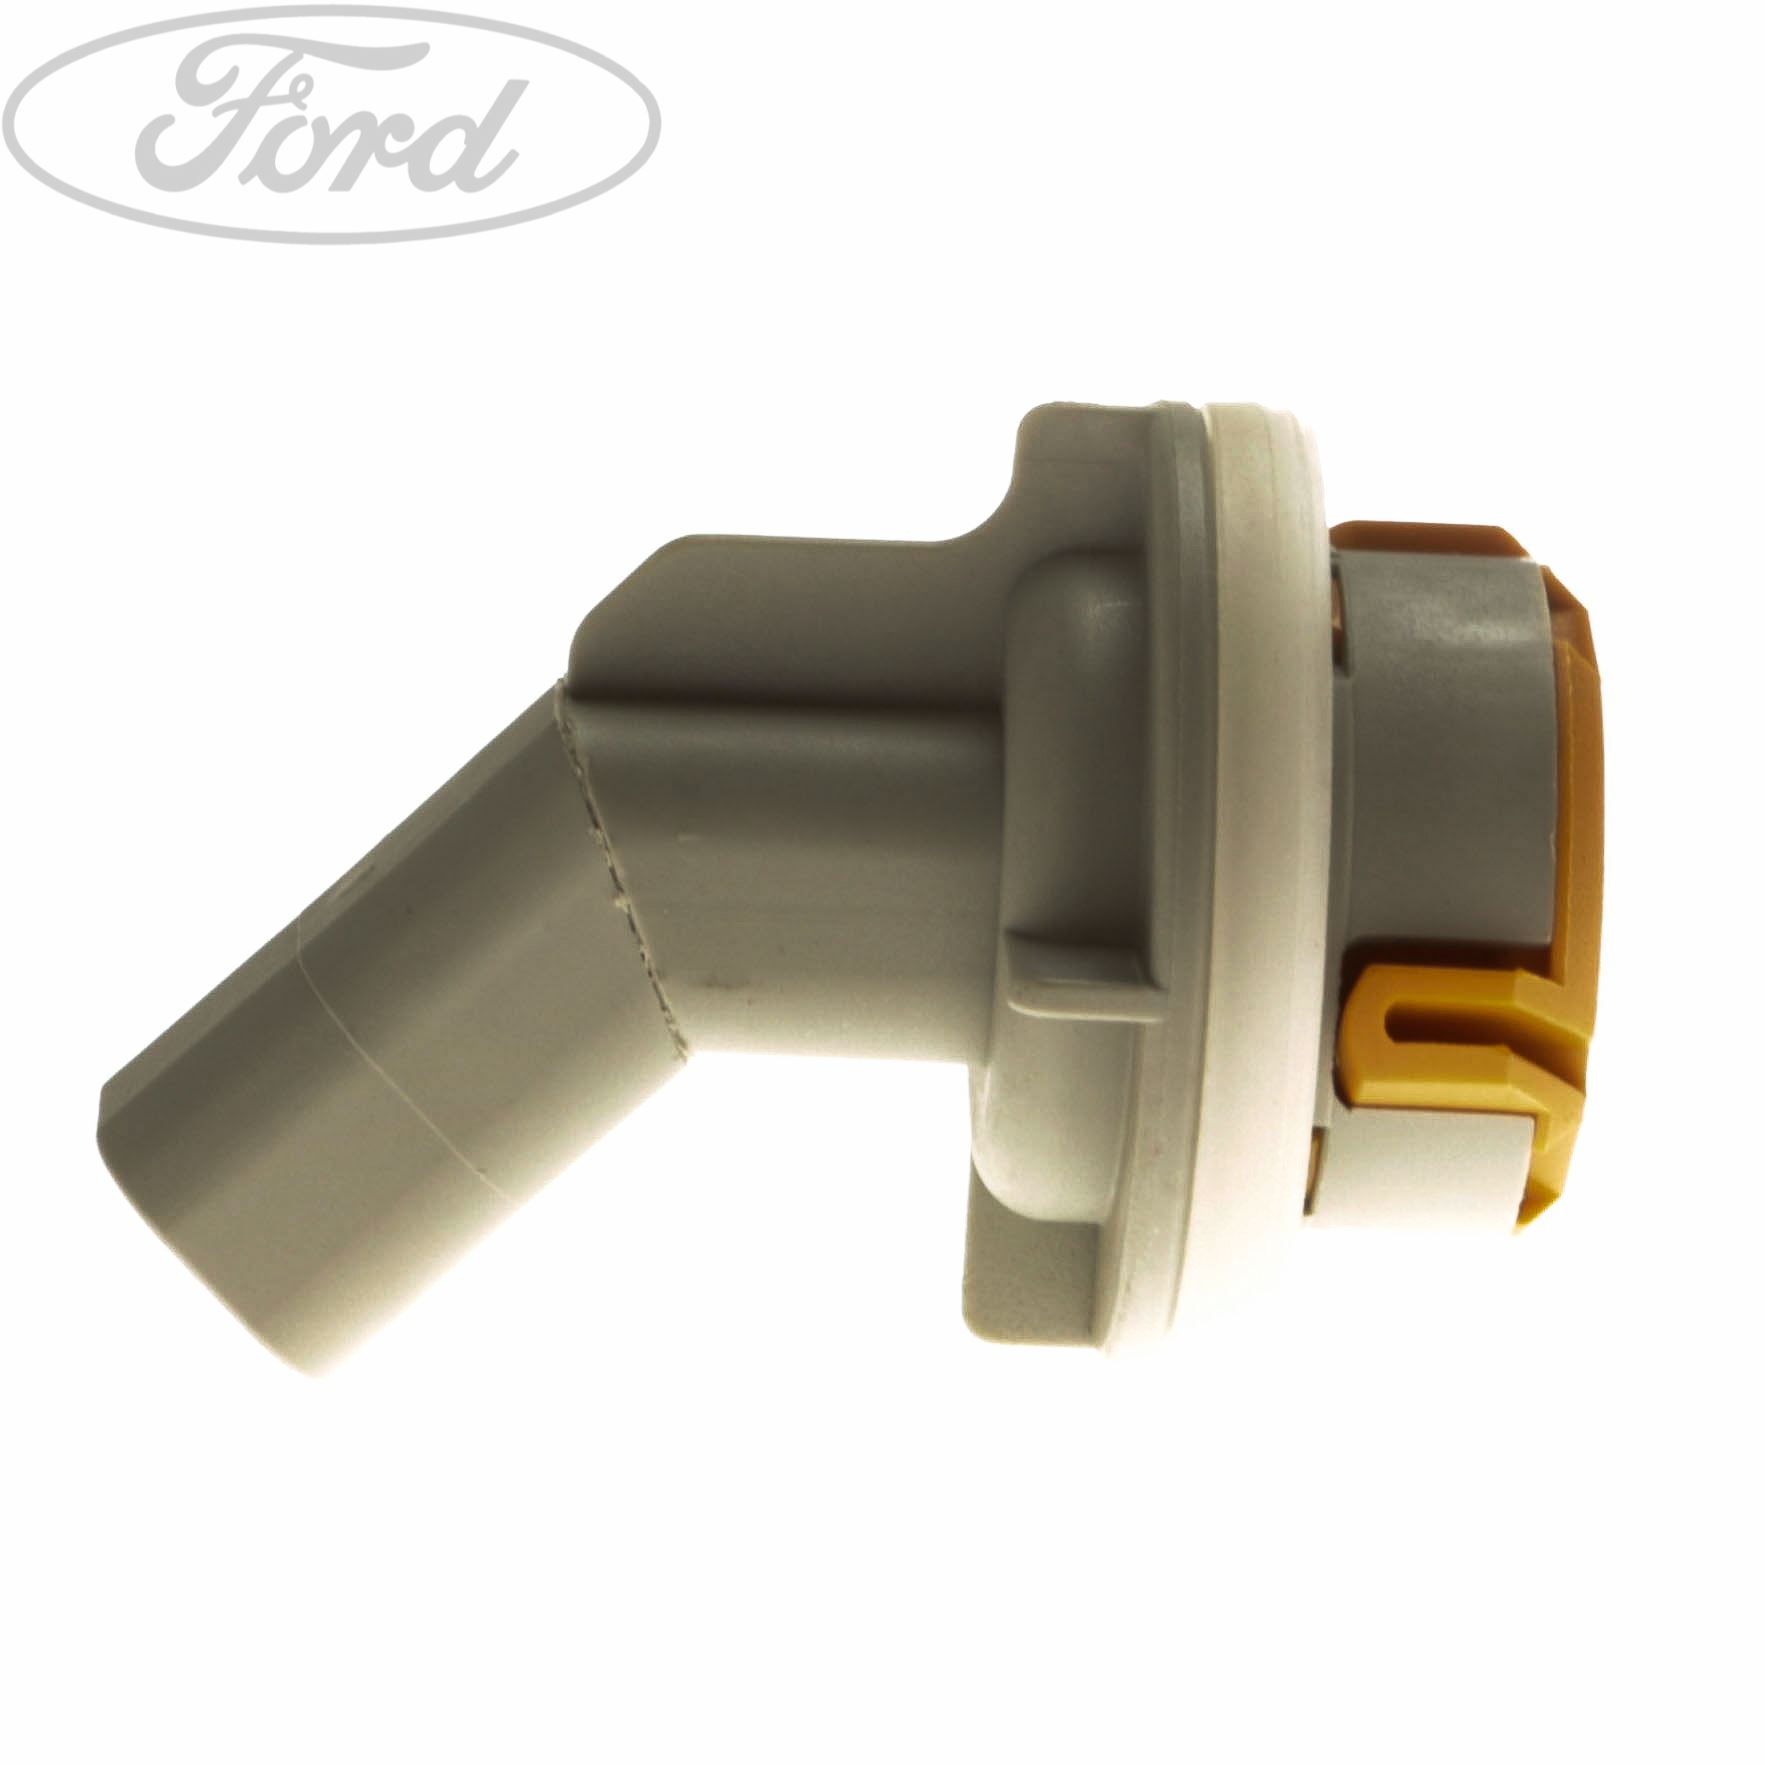 1345075 New Genuine Ford Focus MK2 Rear Indicator Bulb Holder